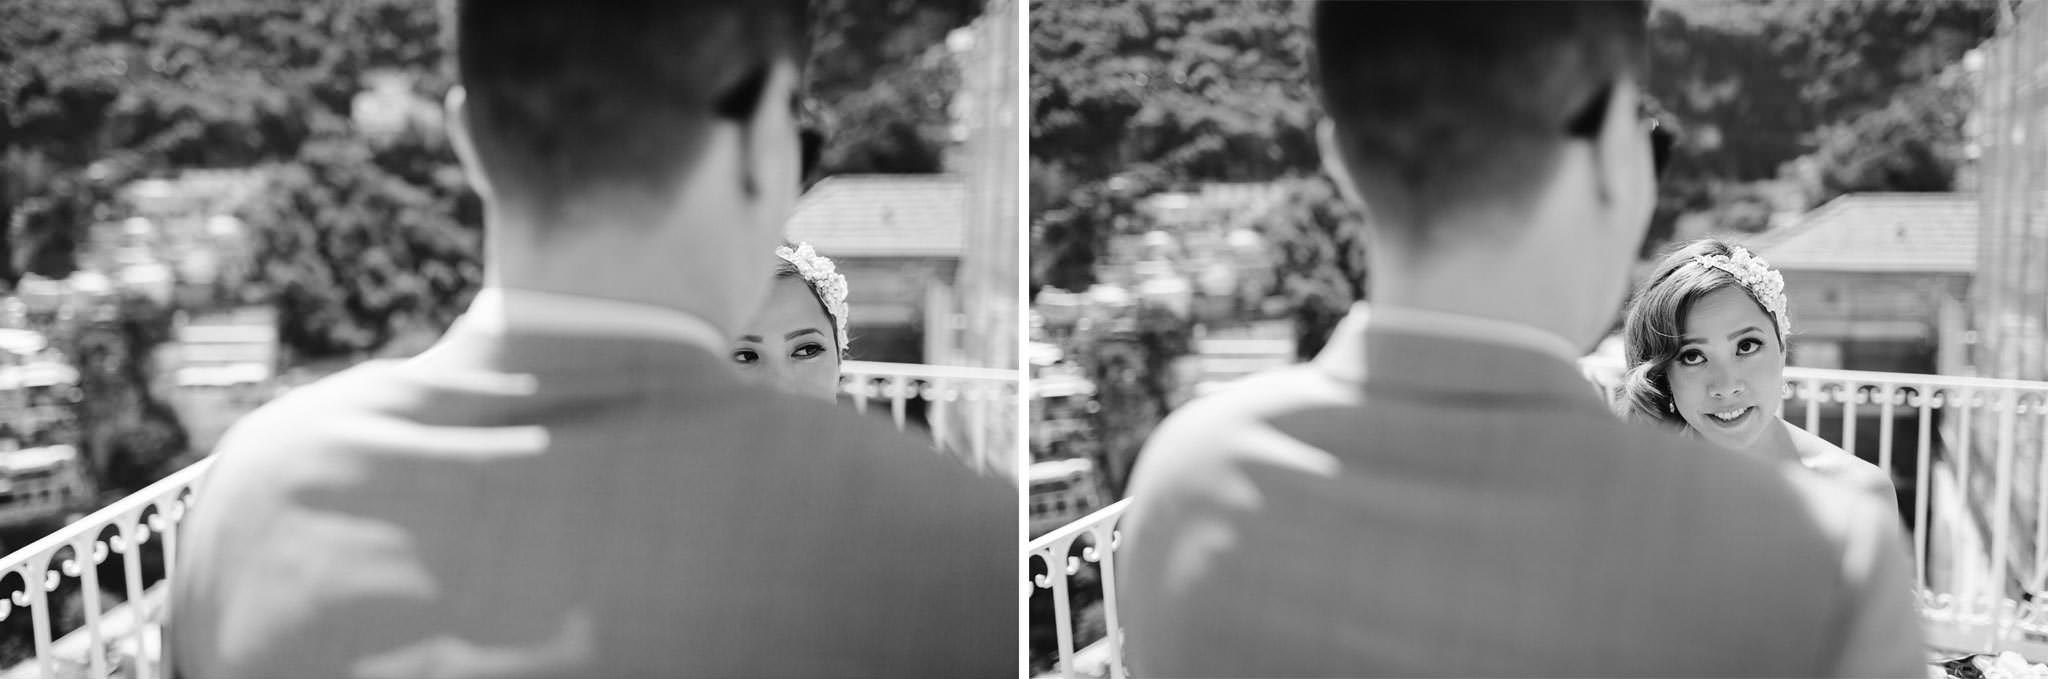 positano-wedding-photographer-042